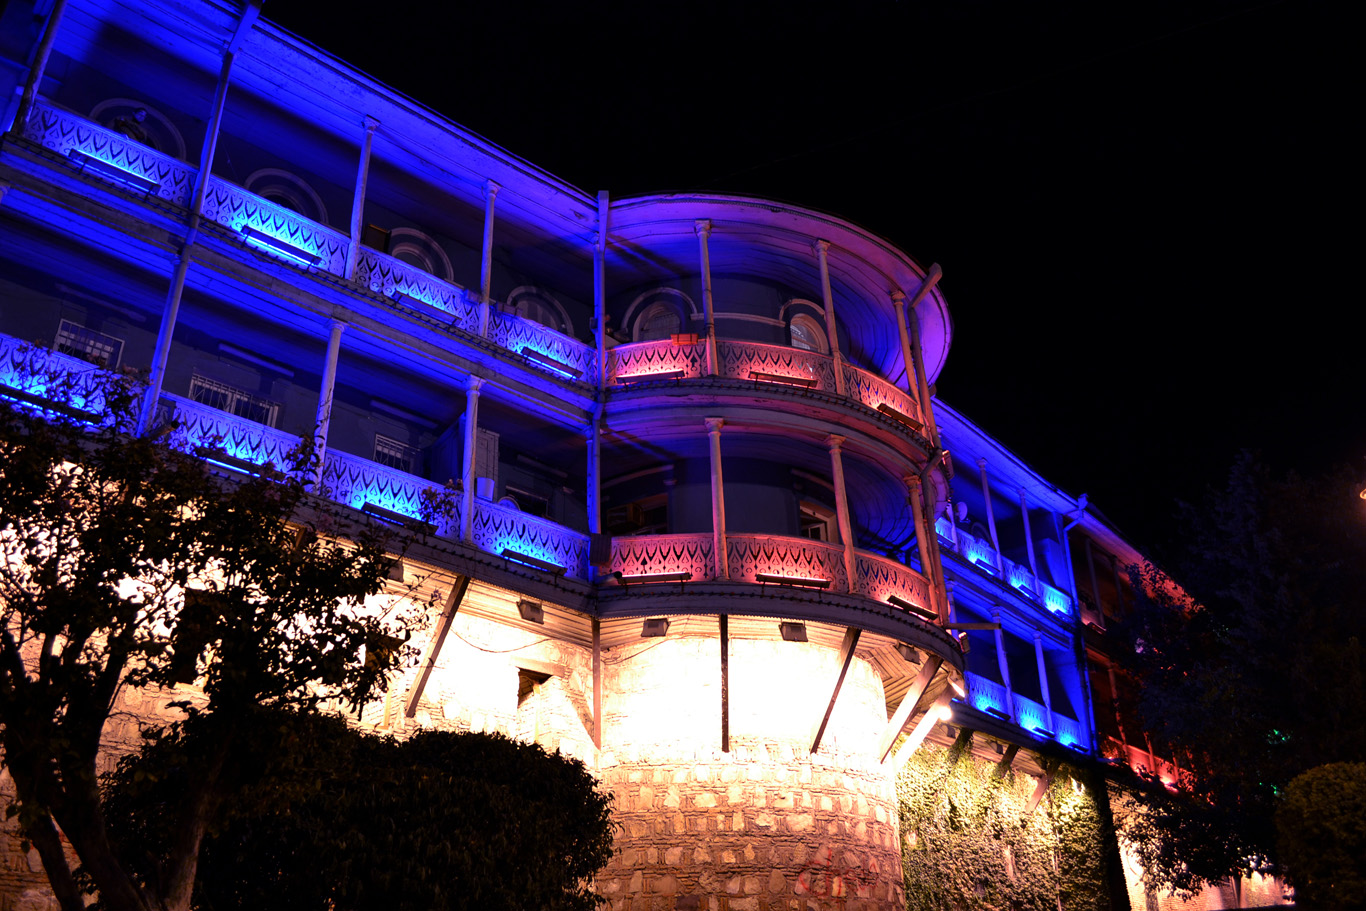 Colorfully illuminated balconies in Tbilisi